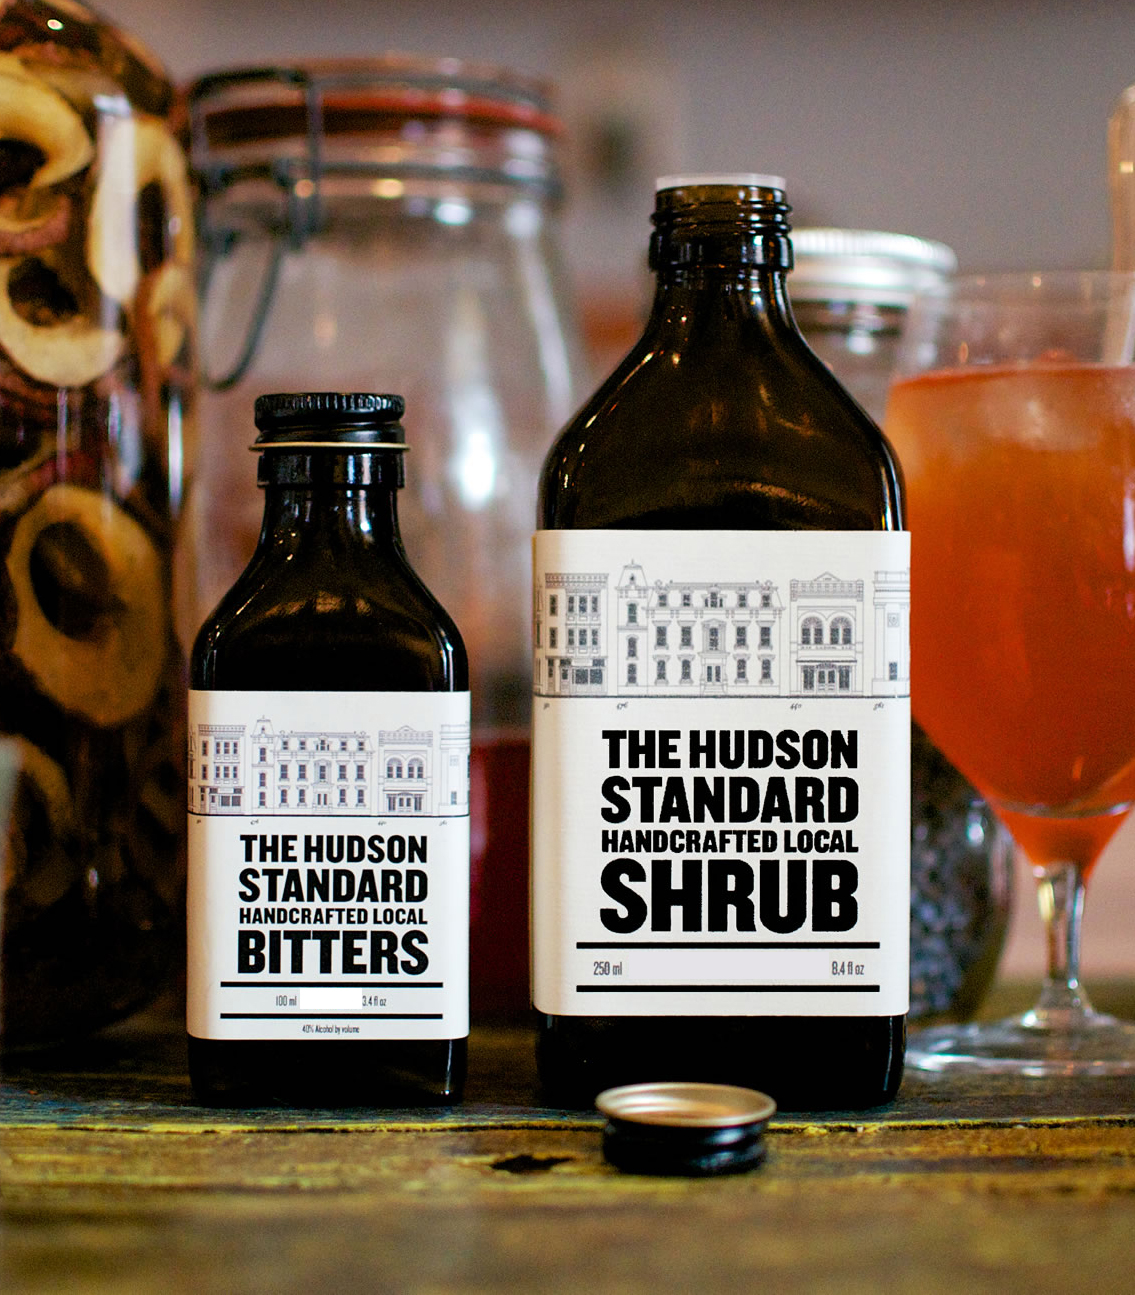 Strawberry Rhubarb Shrub from The Hudson Standard